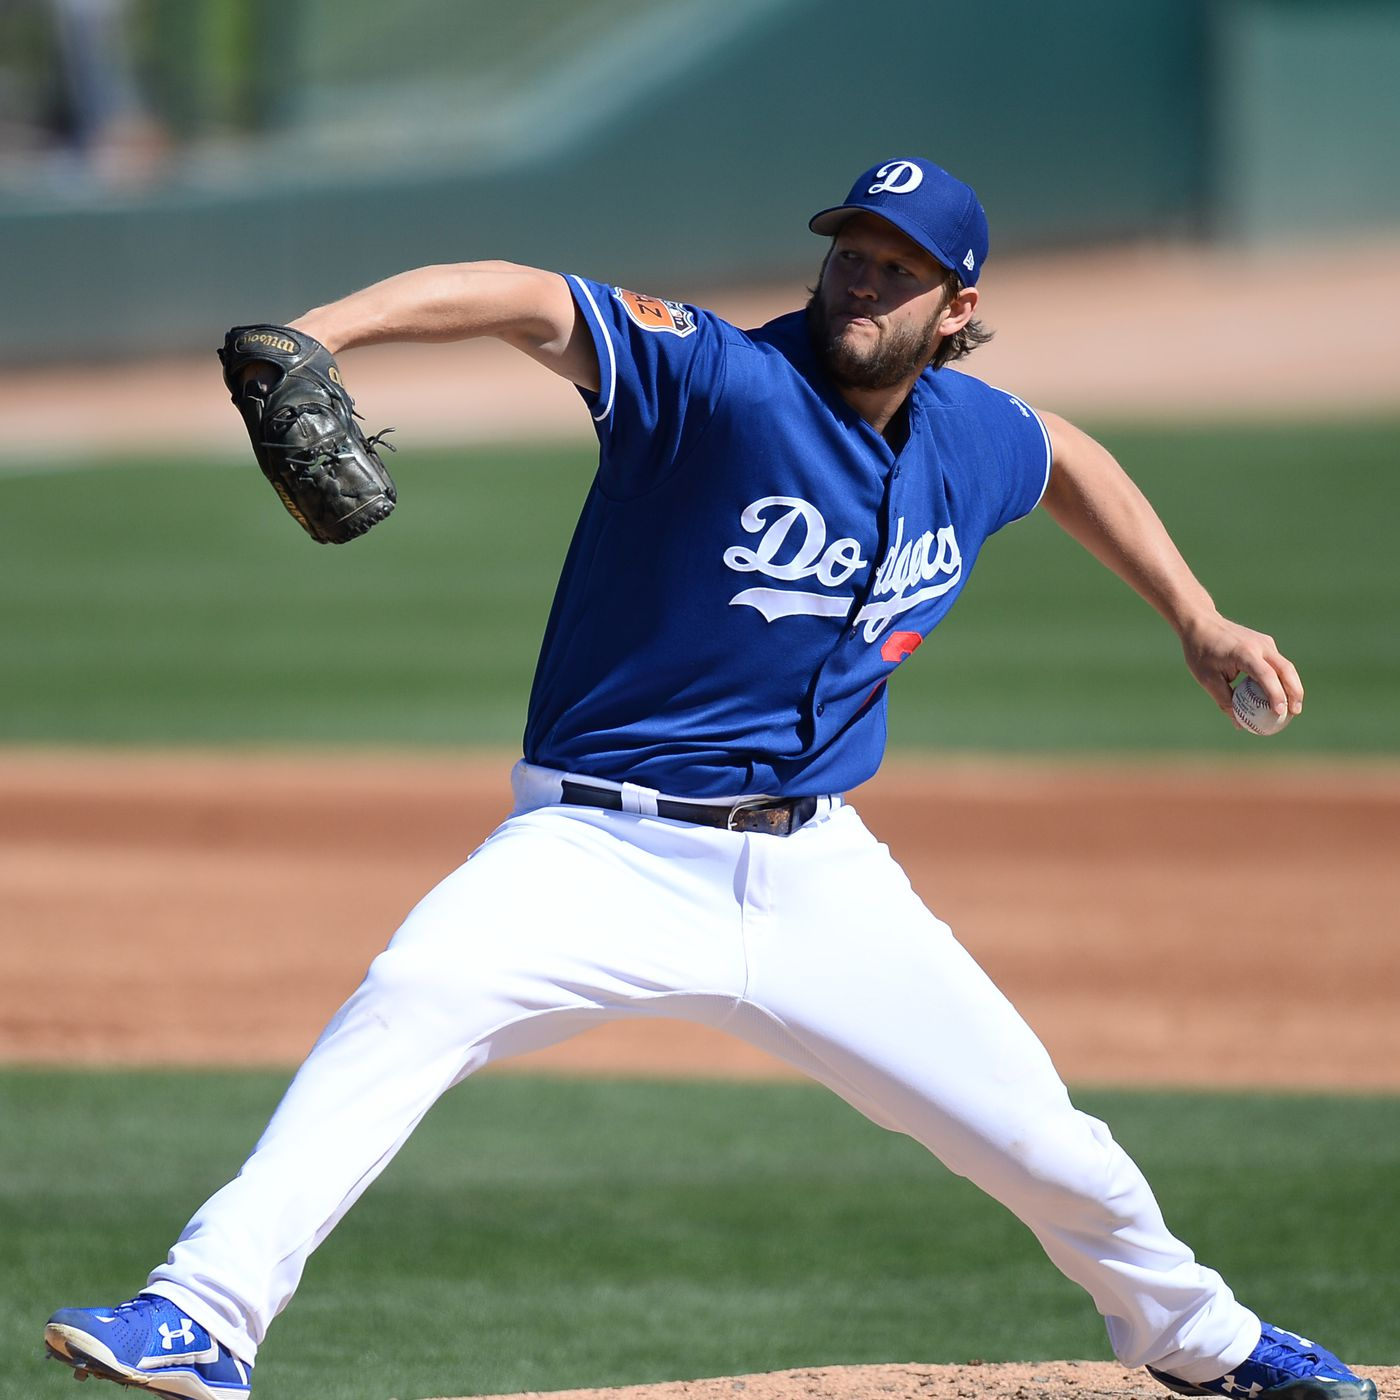 Dodgers Spring Training Schedule This Week Includes Off Day Espn Telecast True Blue La